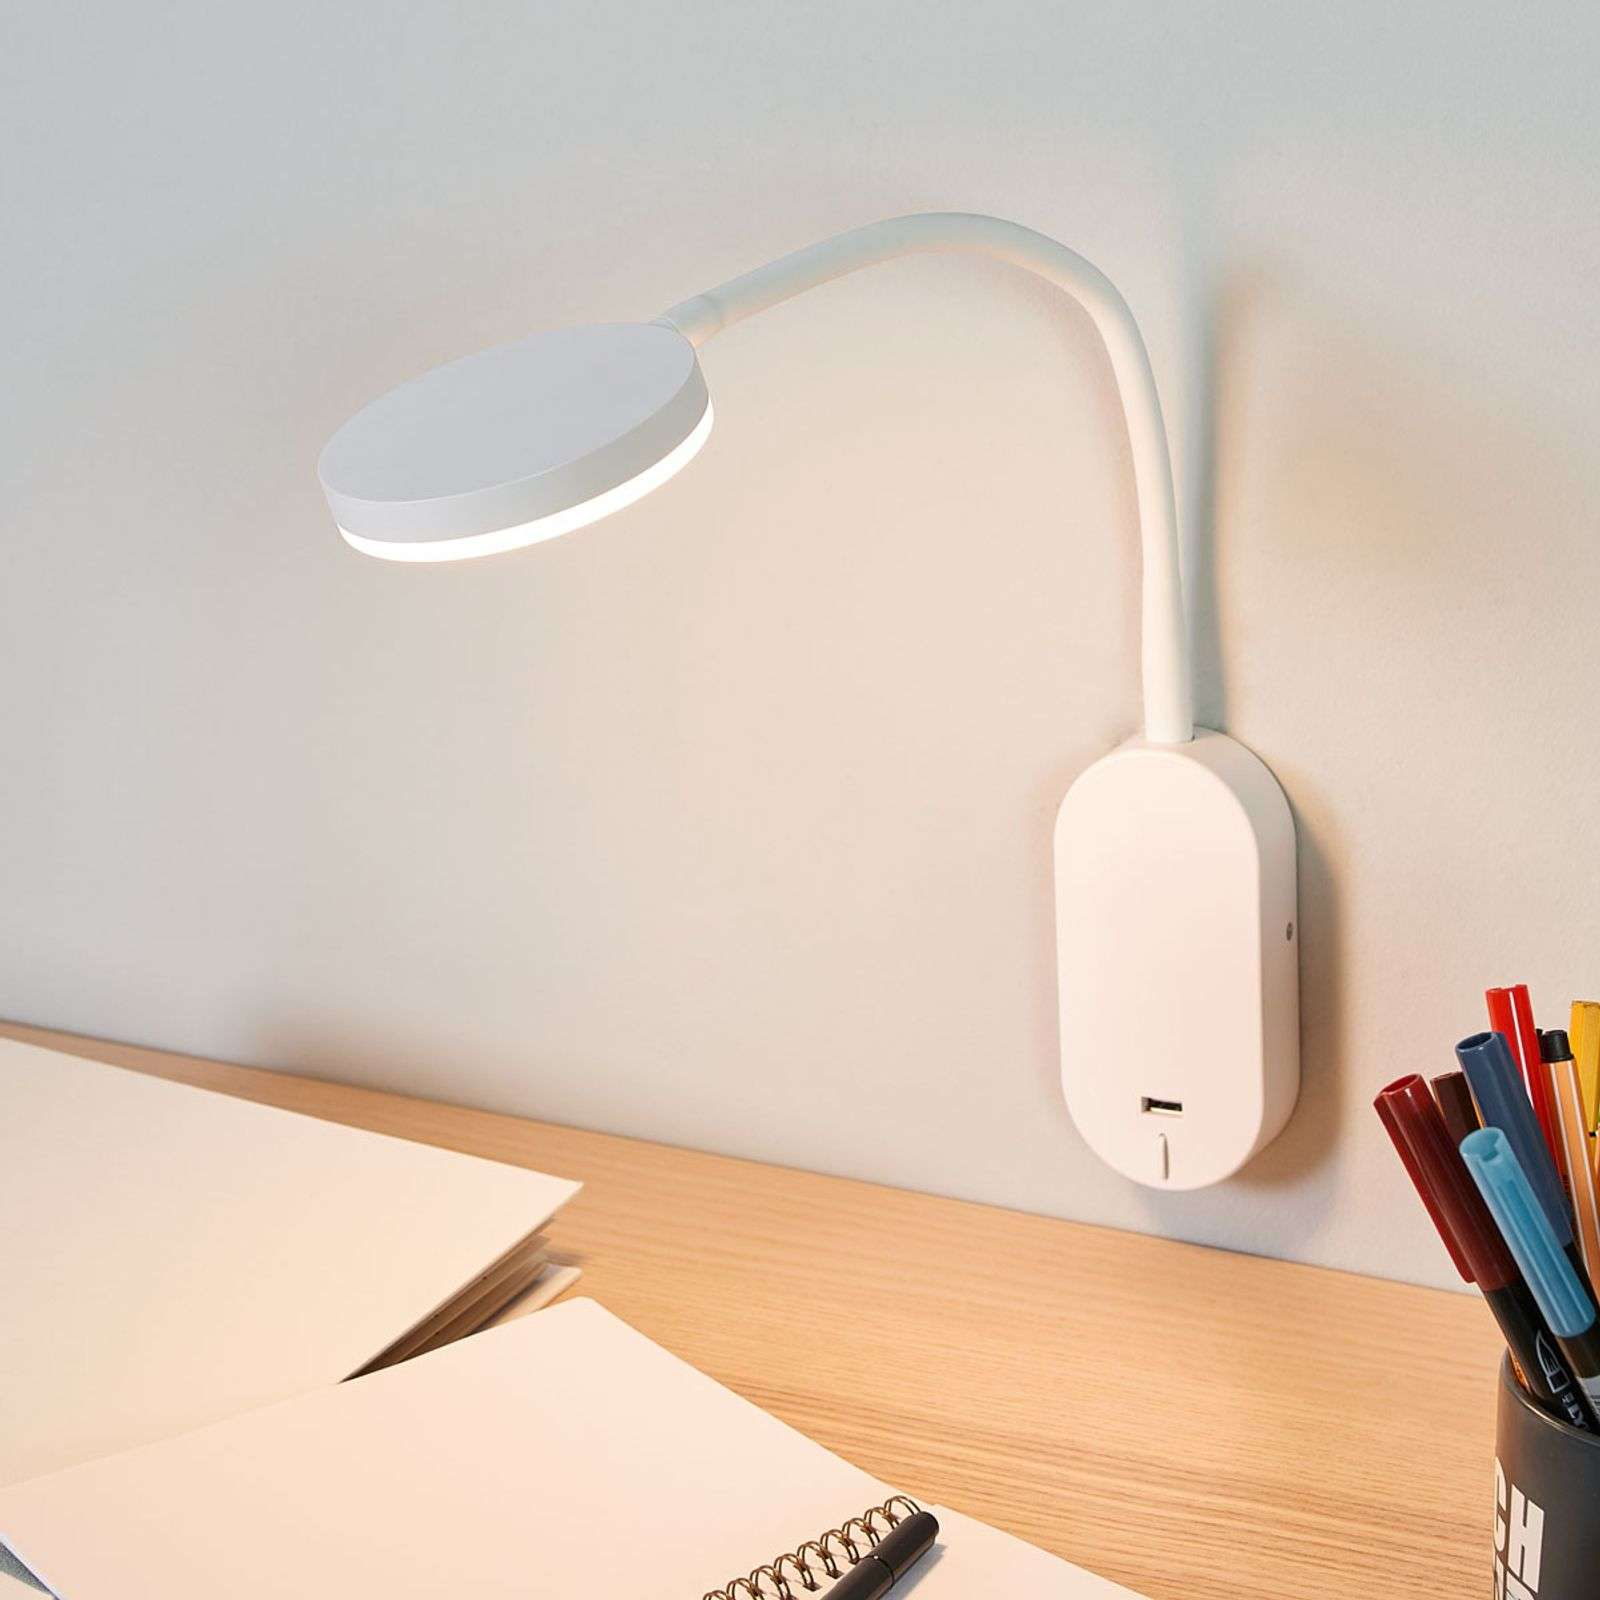 Applique LED Milow con braccio flex e porta USB